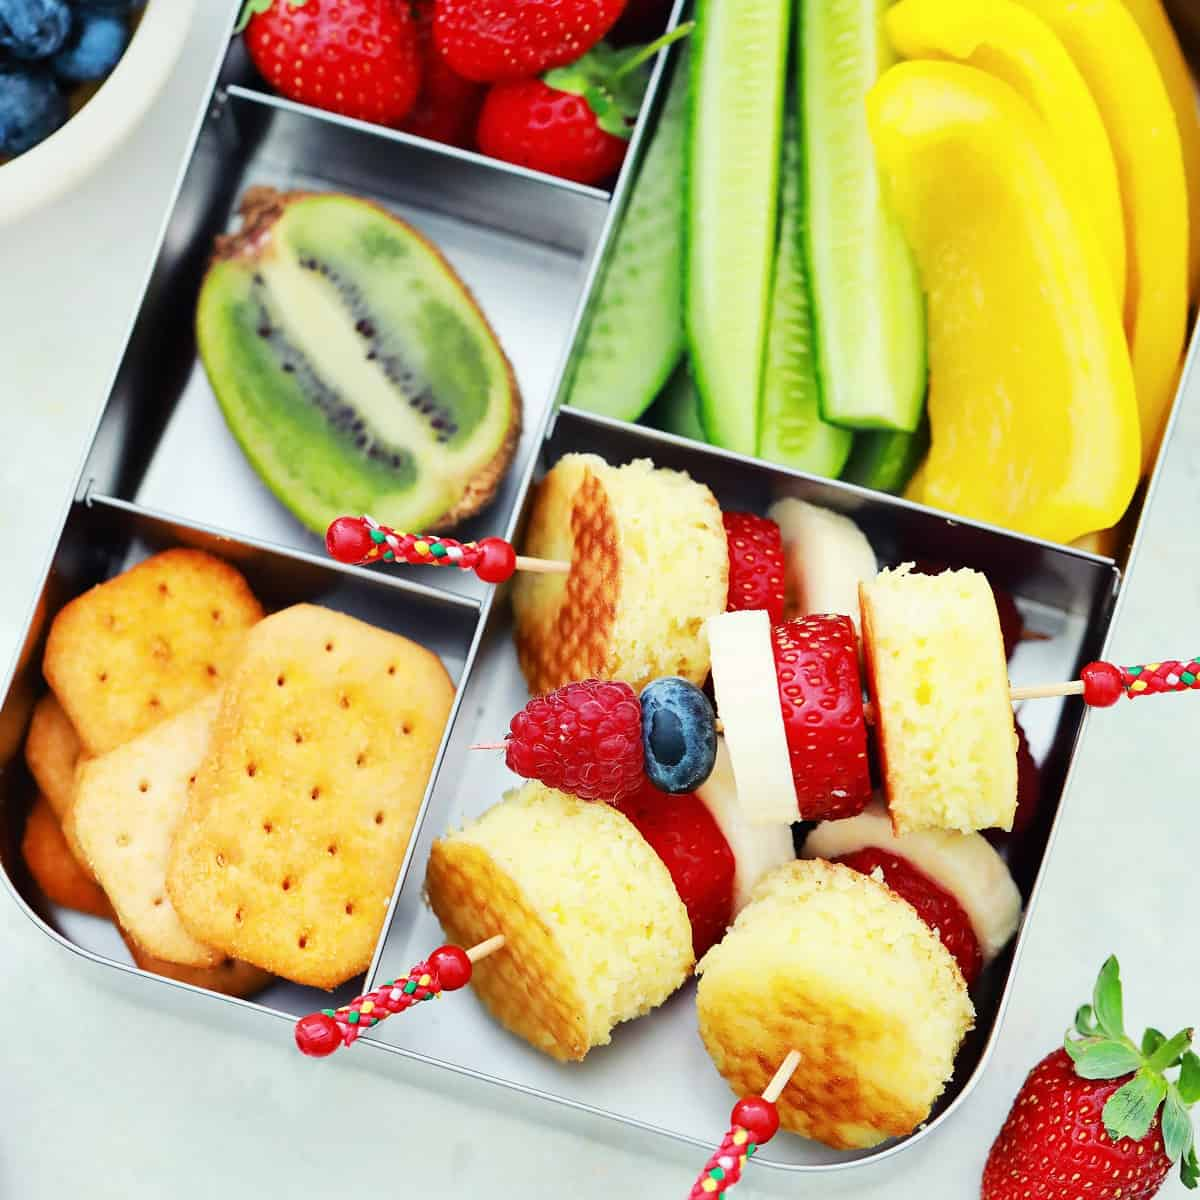 5 Easy Back to School Lunch Ideas That Will Transform Your Kids' Lunch From Boring to Creative